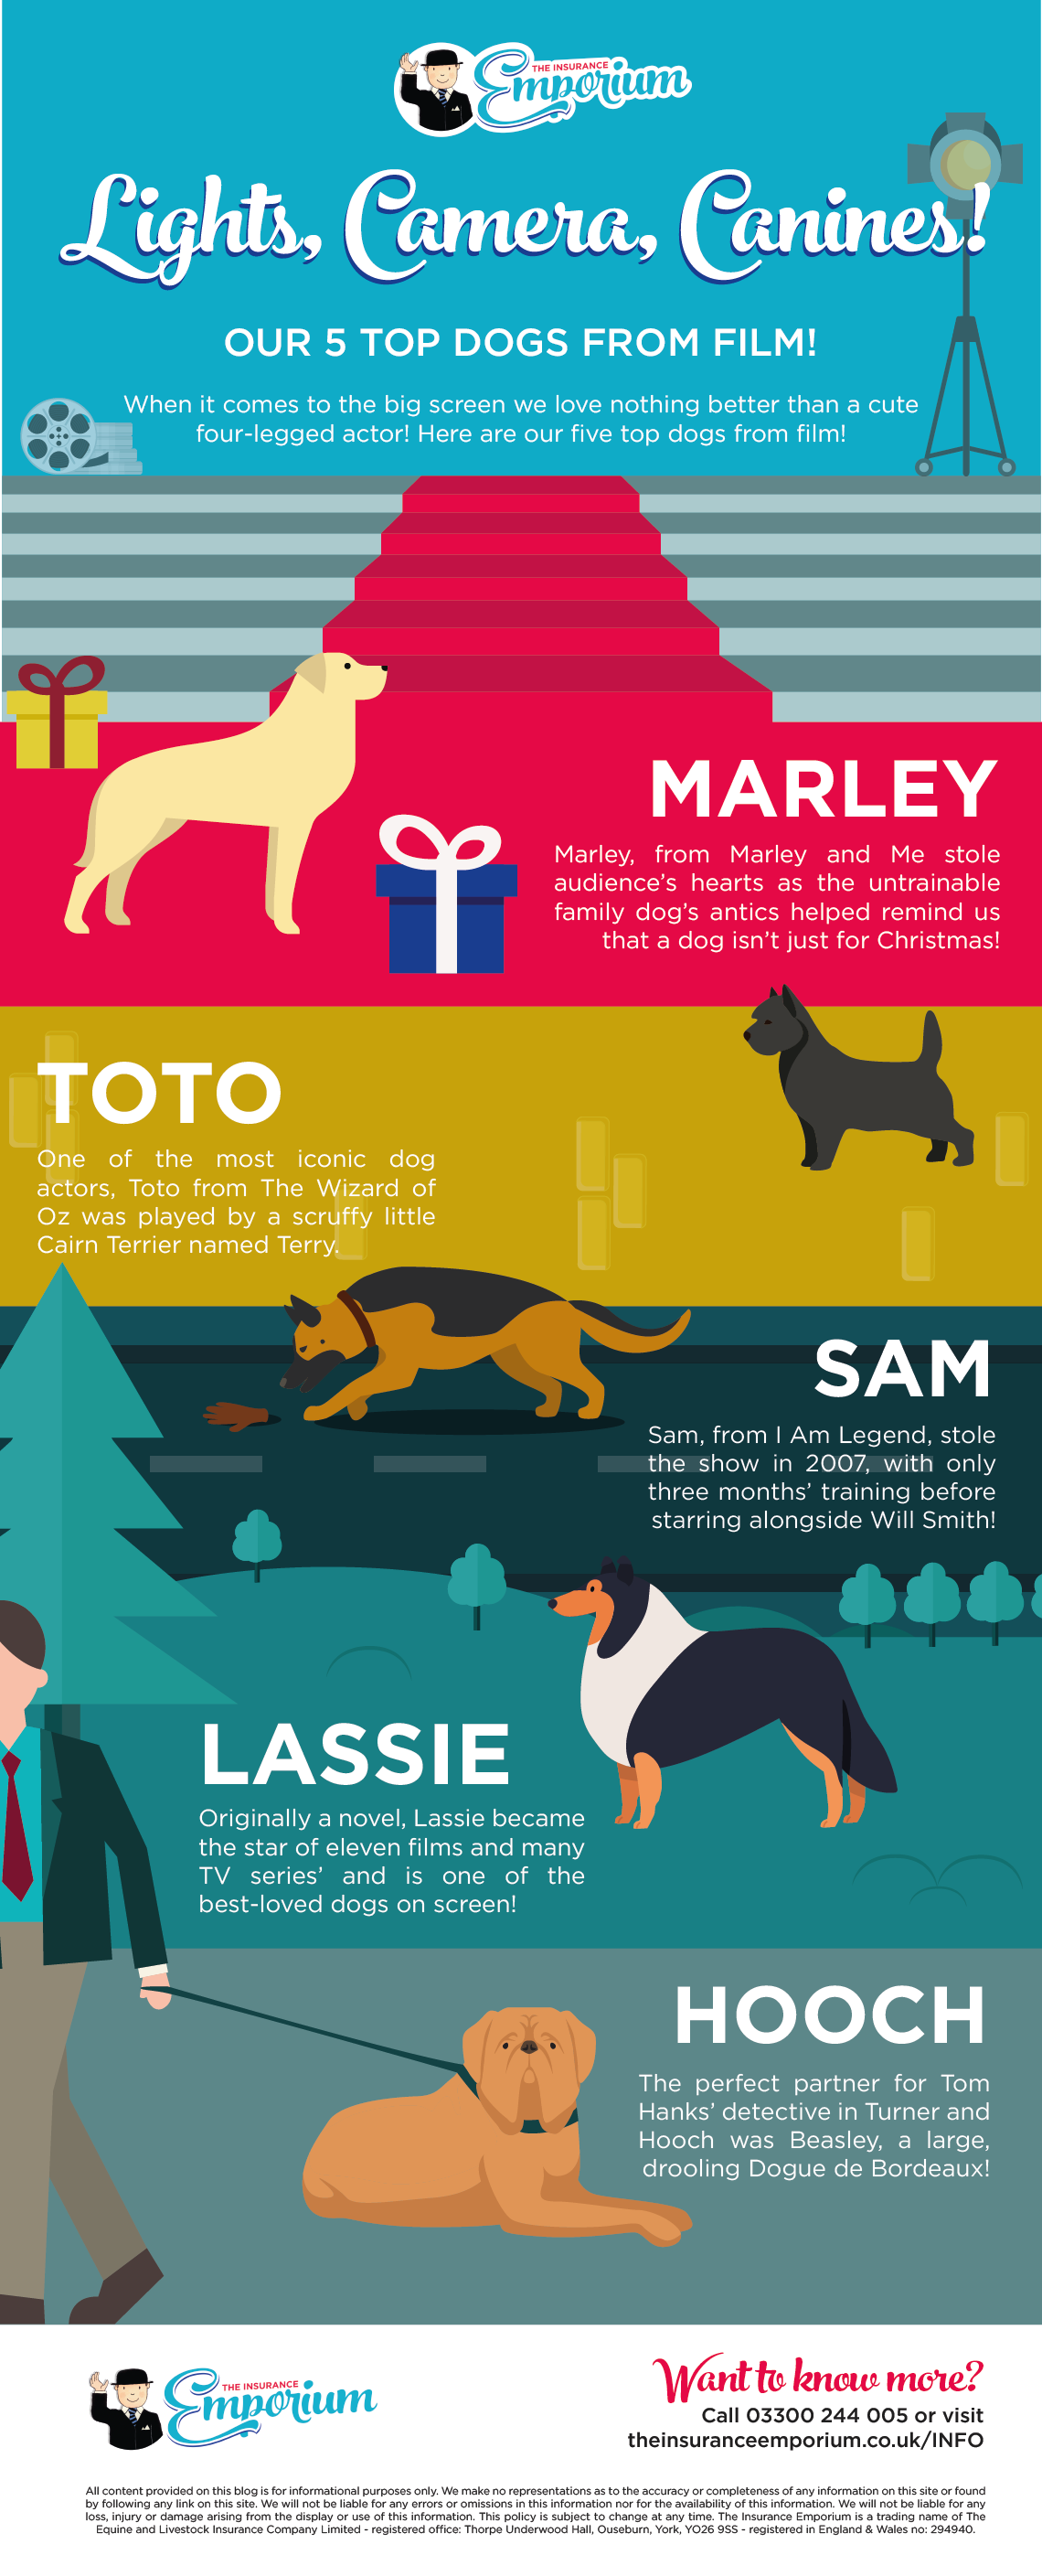 Lights, Camera, Canines! Our 5 Top Dogs from Film!  Infographic of famous dogs from film.